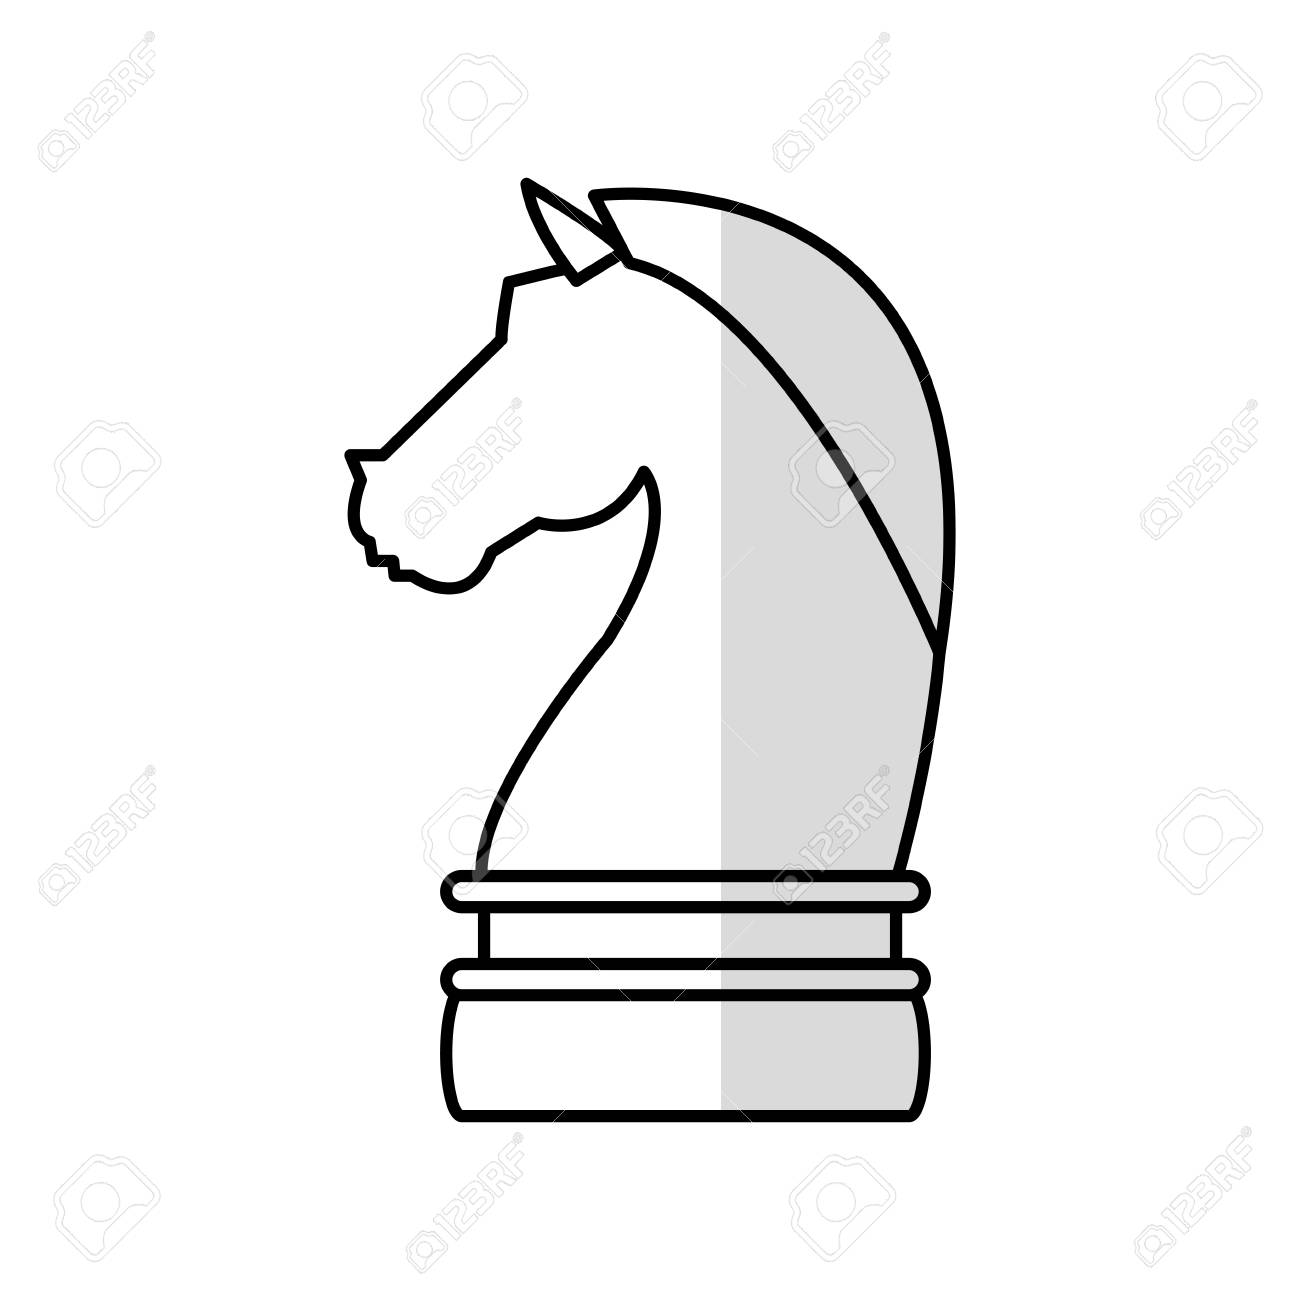 Knight Chess Piece Icon Image Vector Illustration Design Royalty Free Cliparts Vectors And Stock Illustration Image 73557605